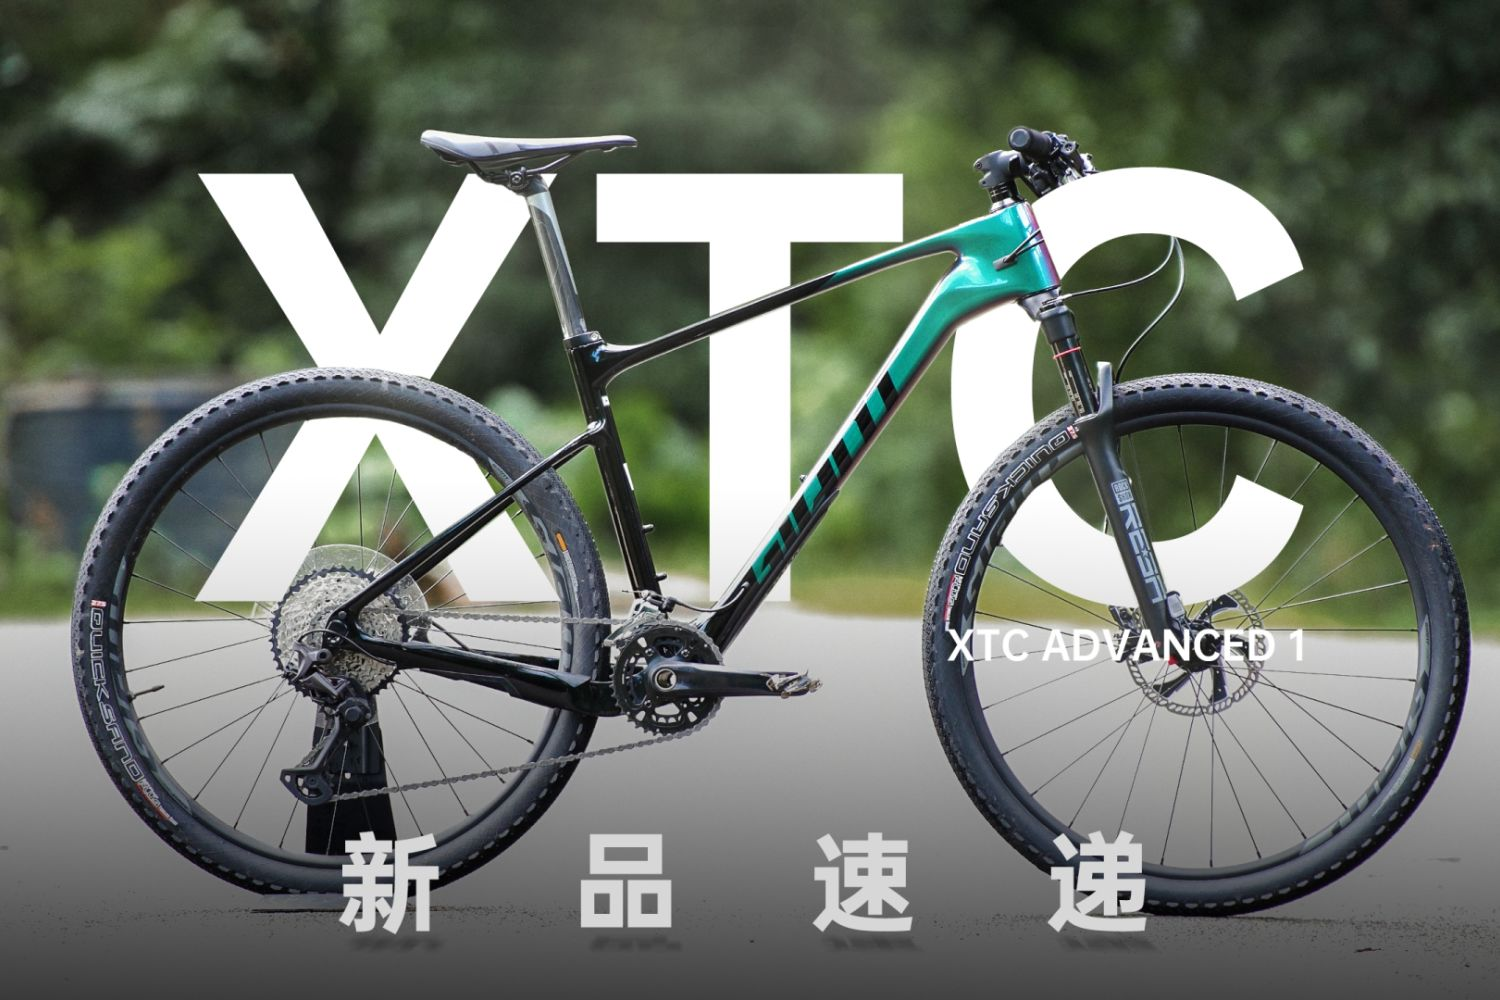 新品速递:捷安特XTC ADVANCED 1碳纤维山地车